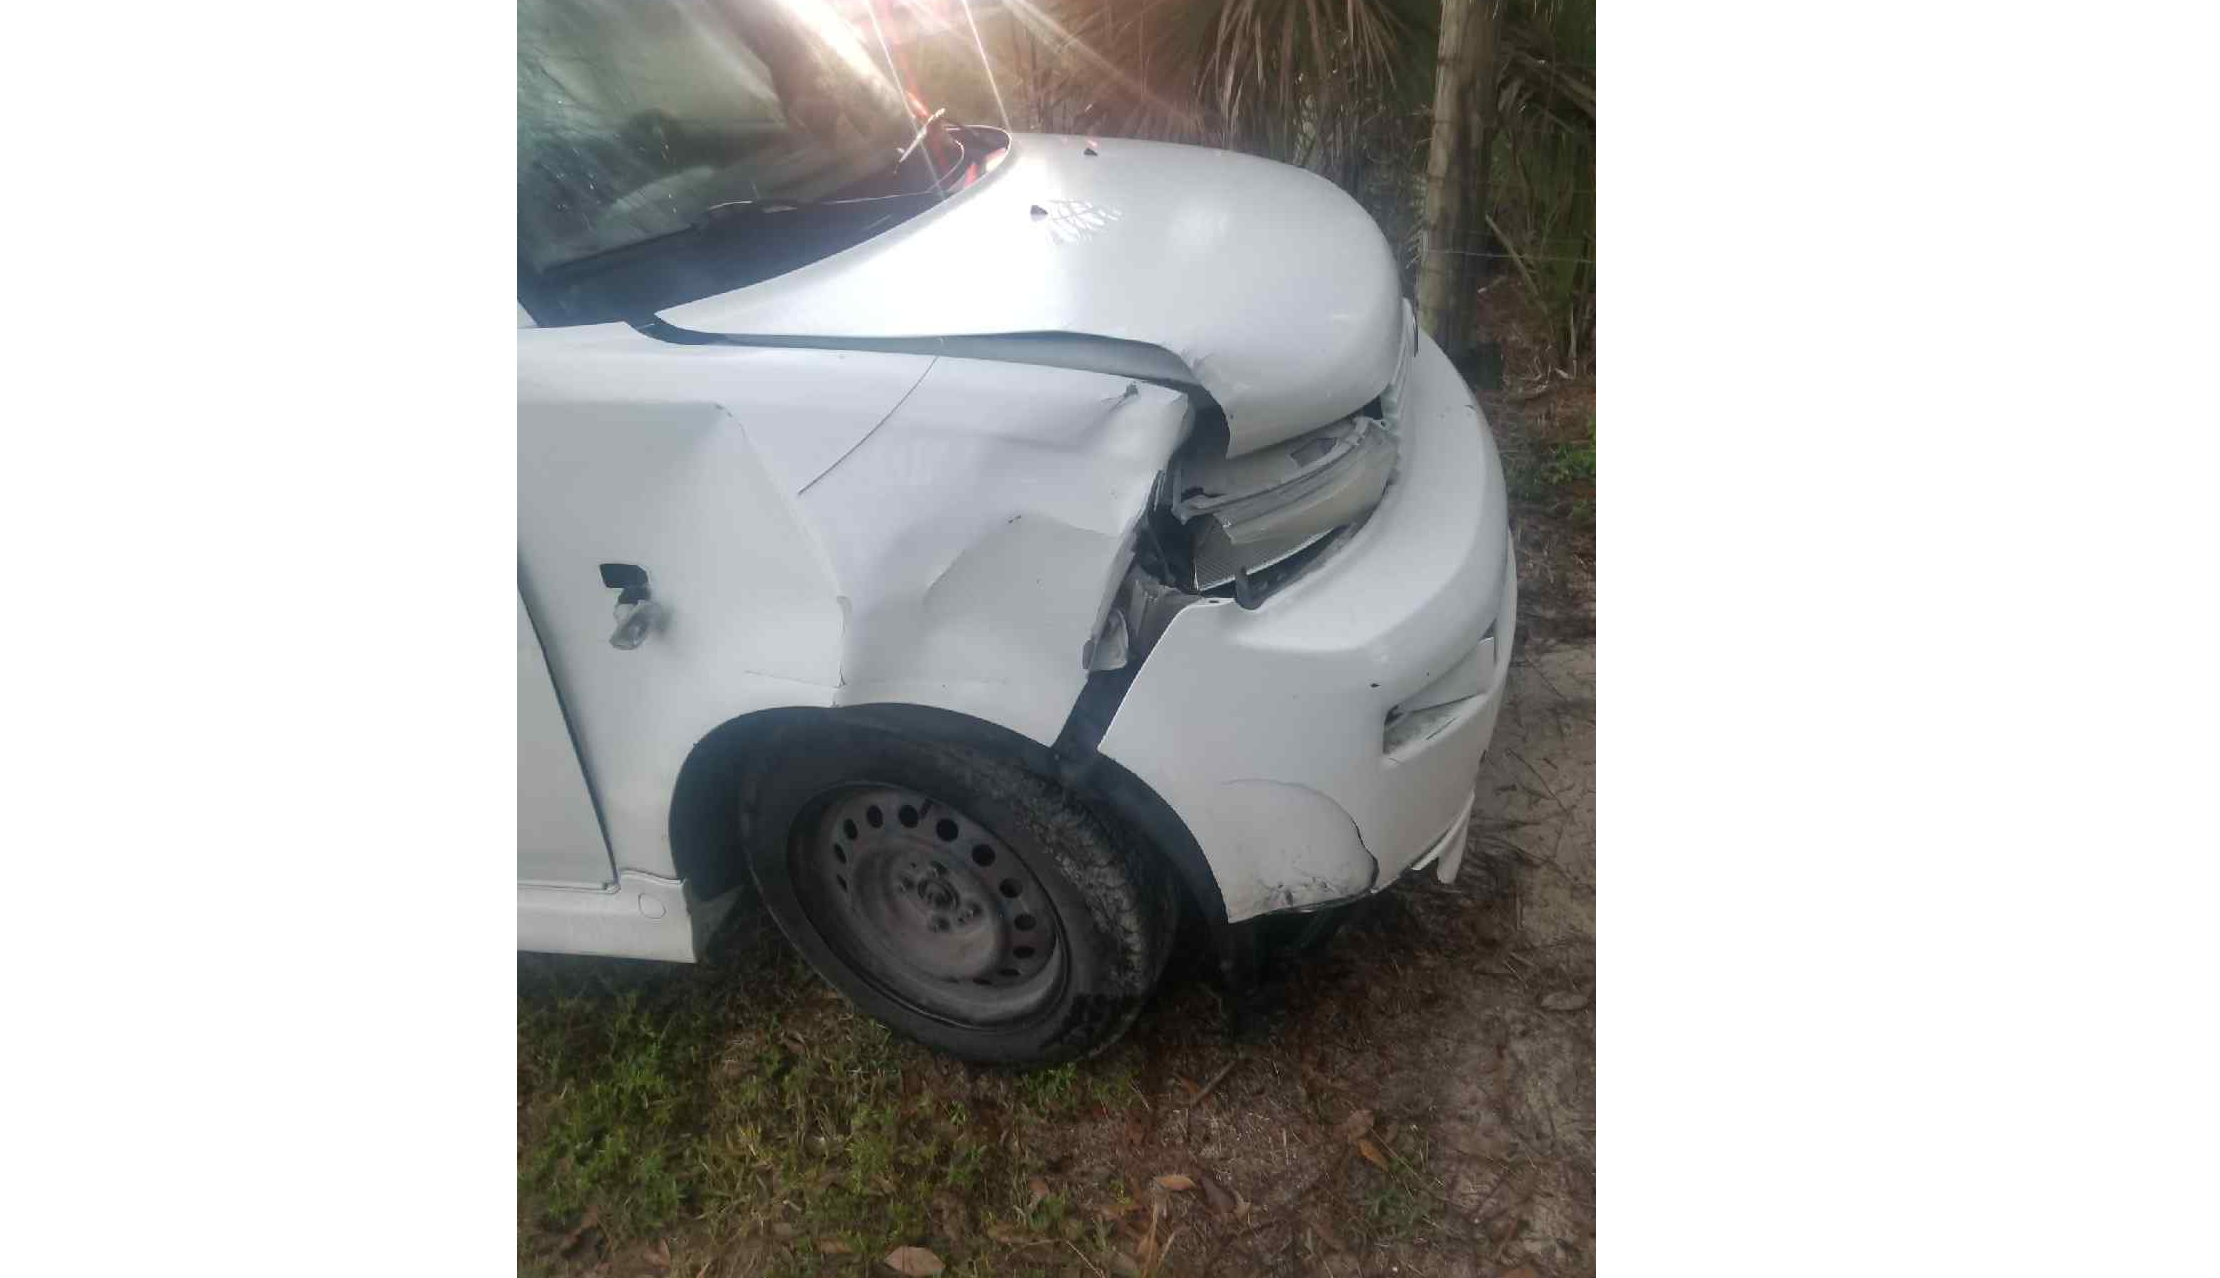 Photos Show Totaled Car Involved In Crash That Killed 12